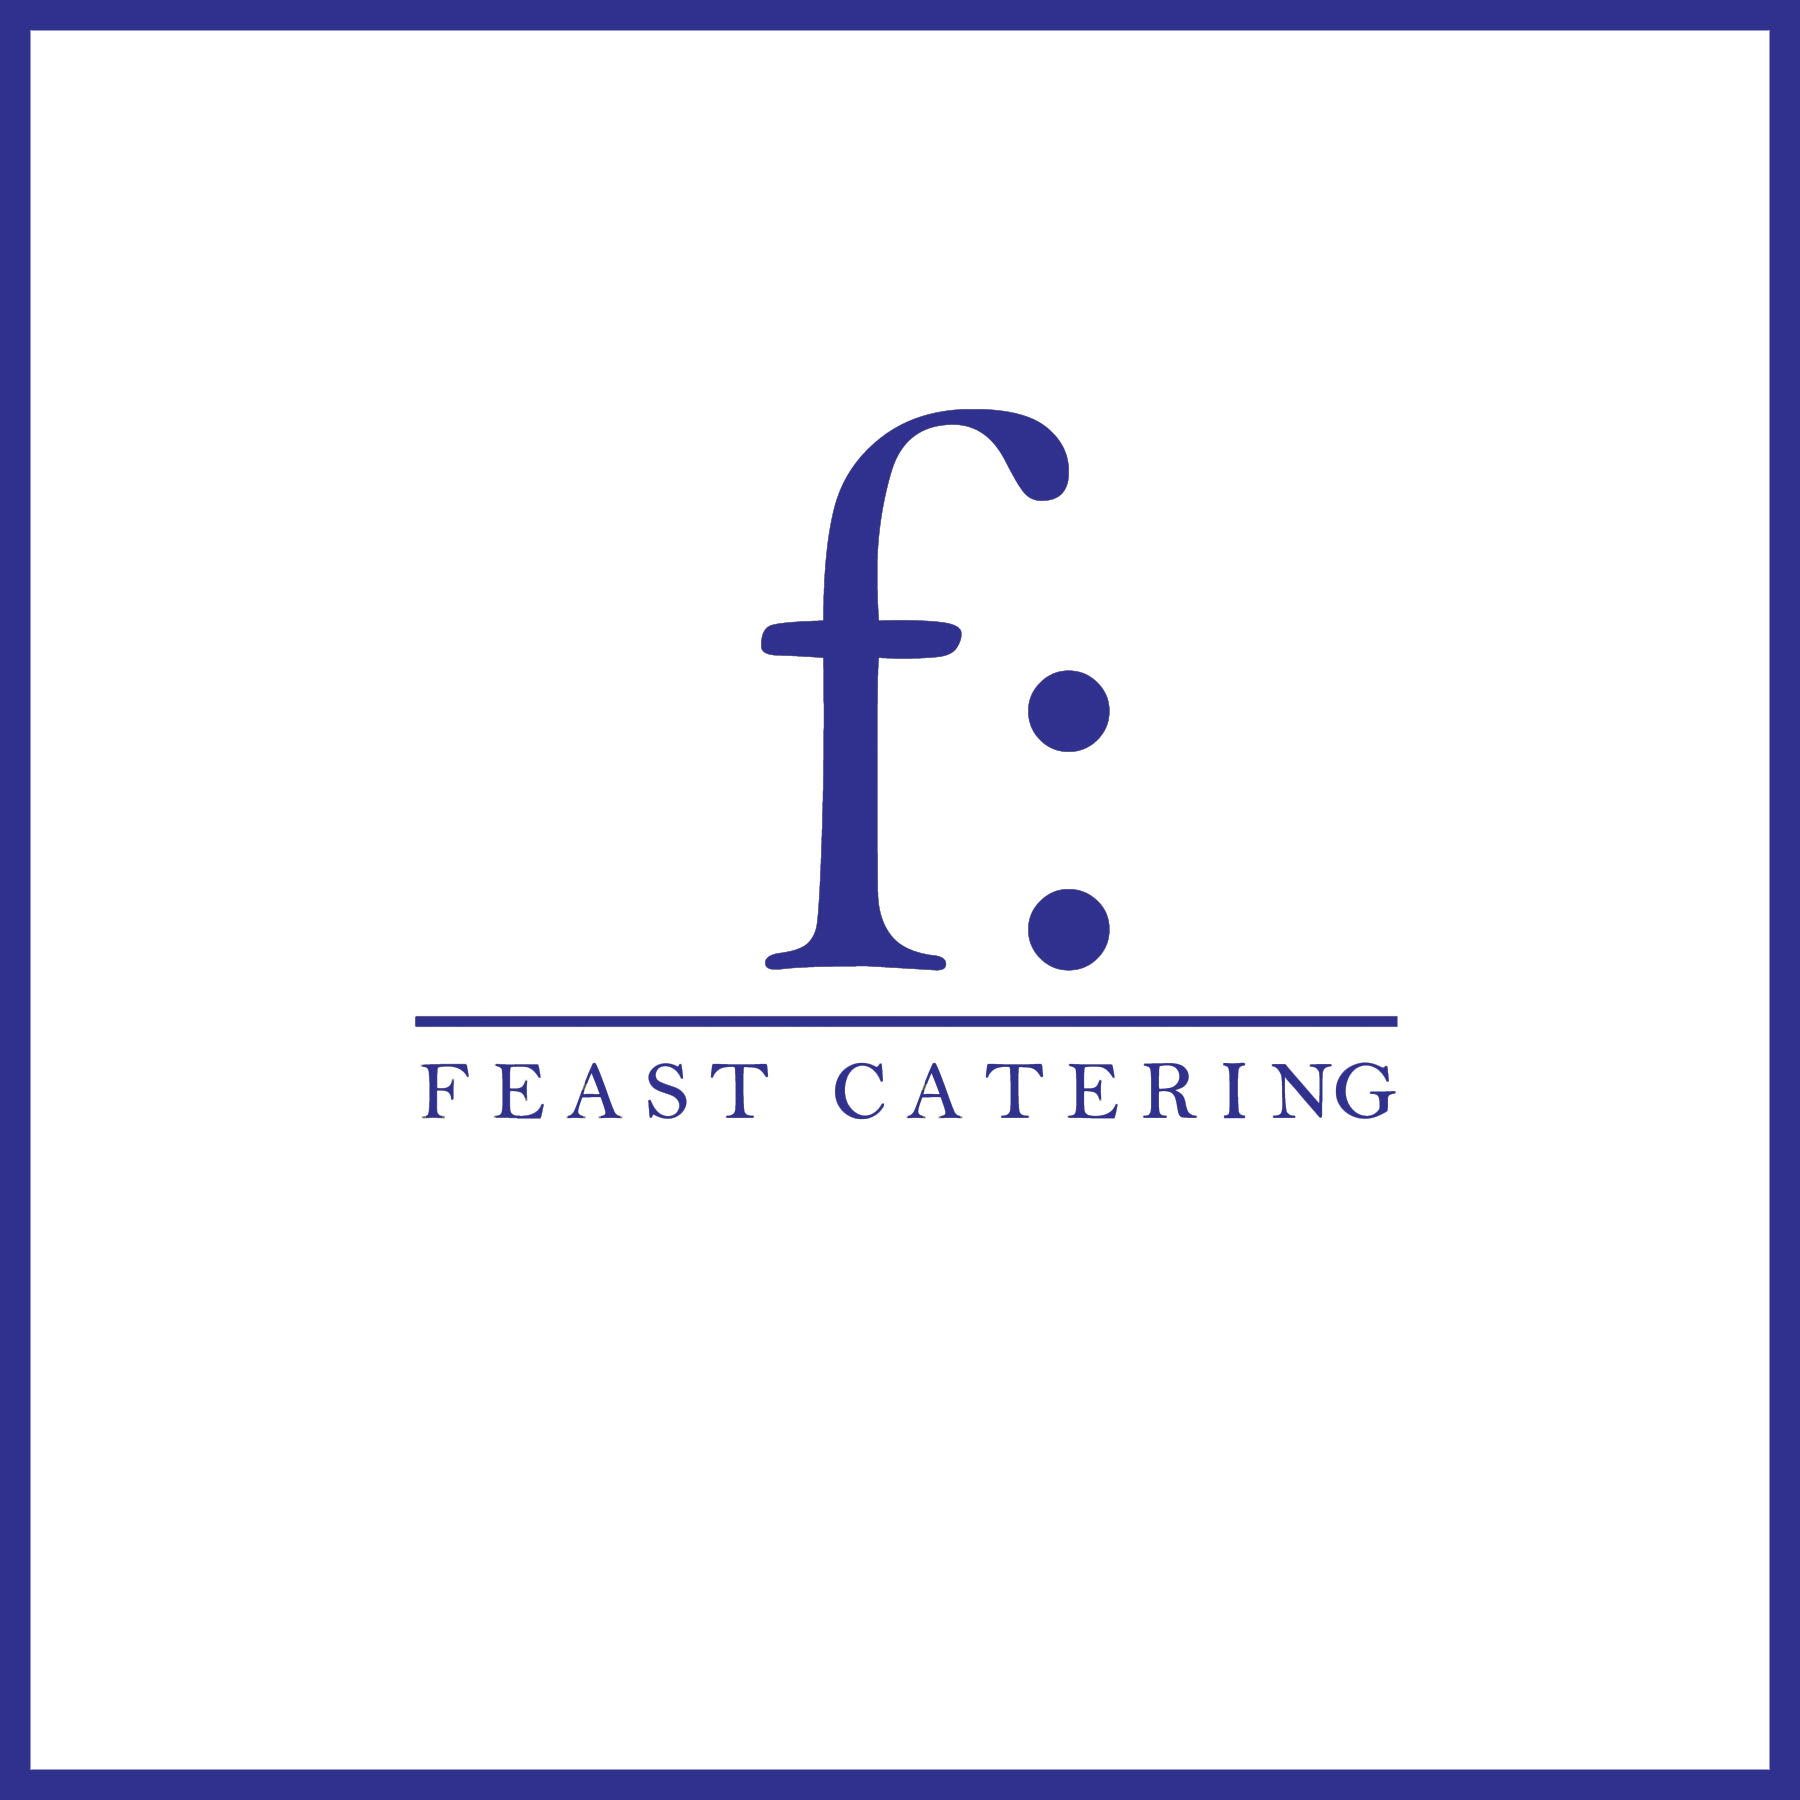 Feast Catering Sq. Logo